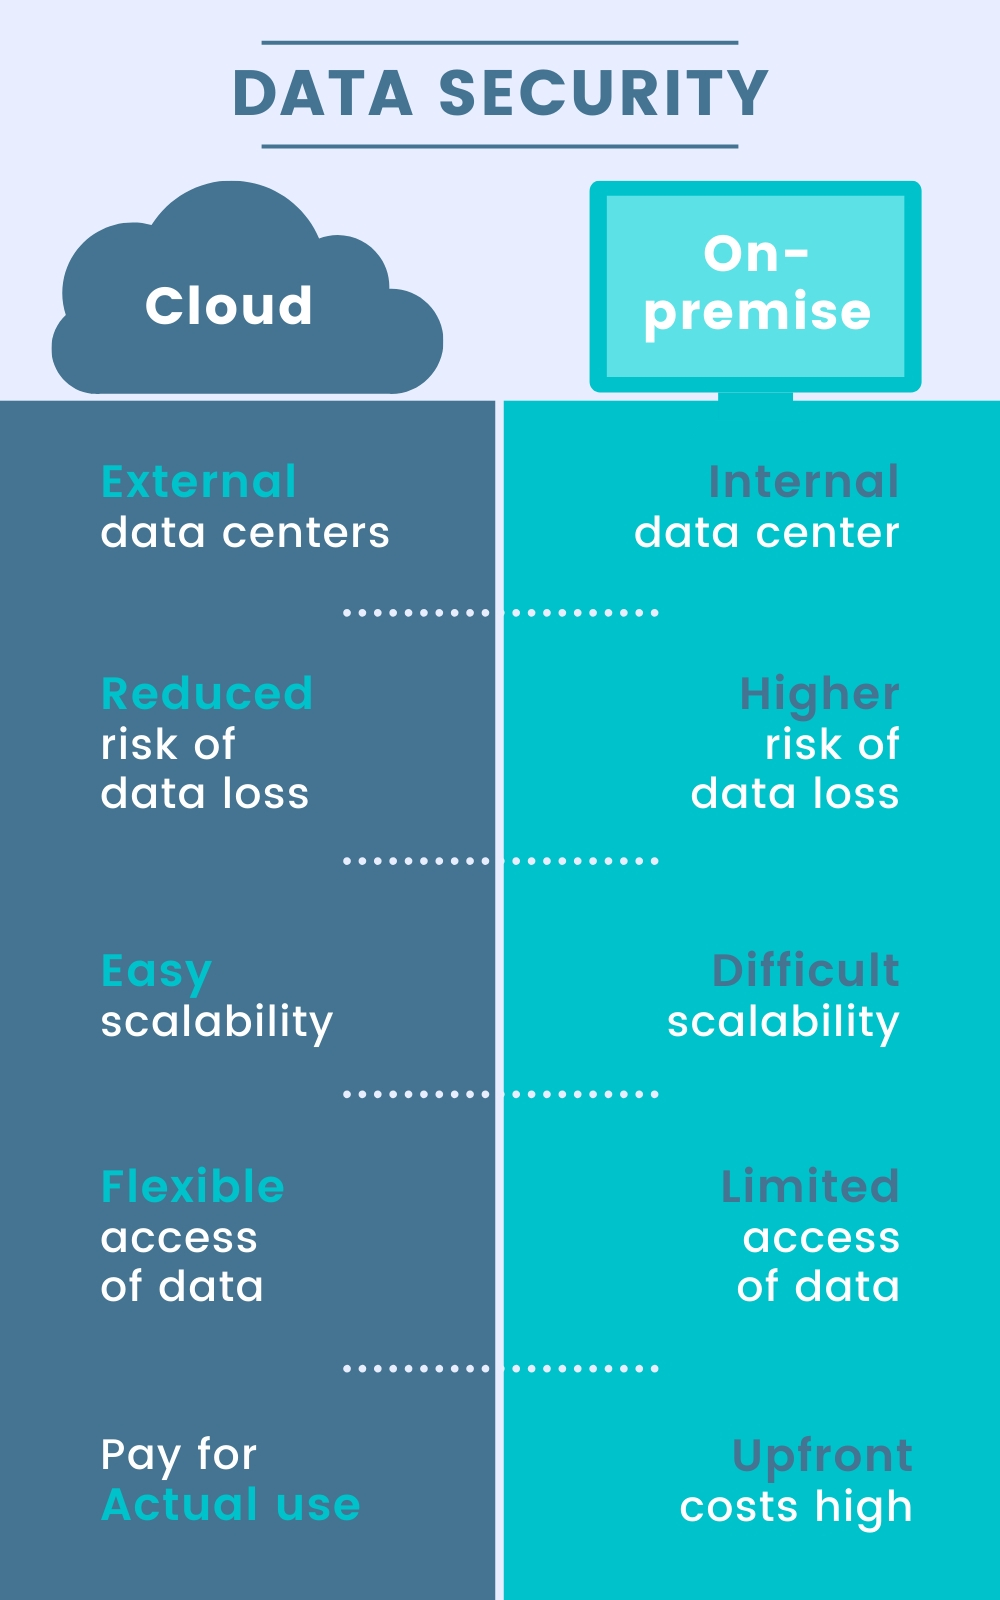 YouSolutionCloudSecurityInfographic